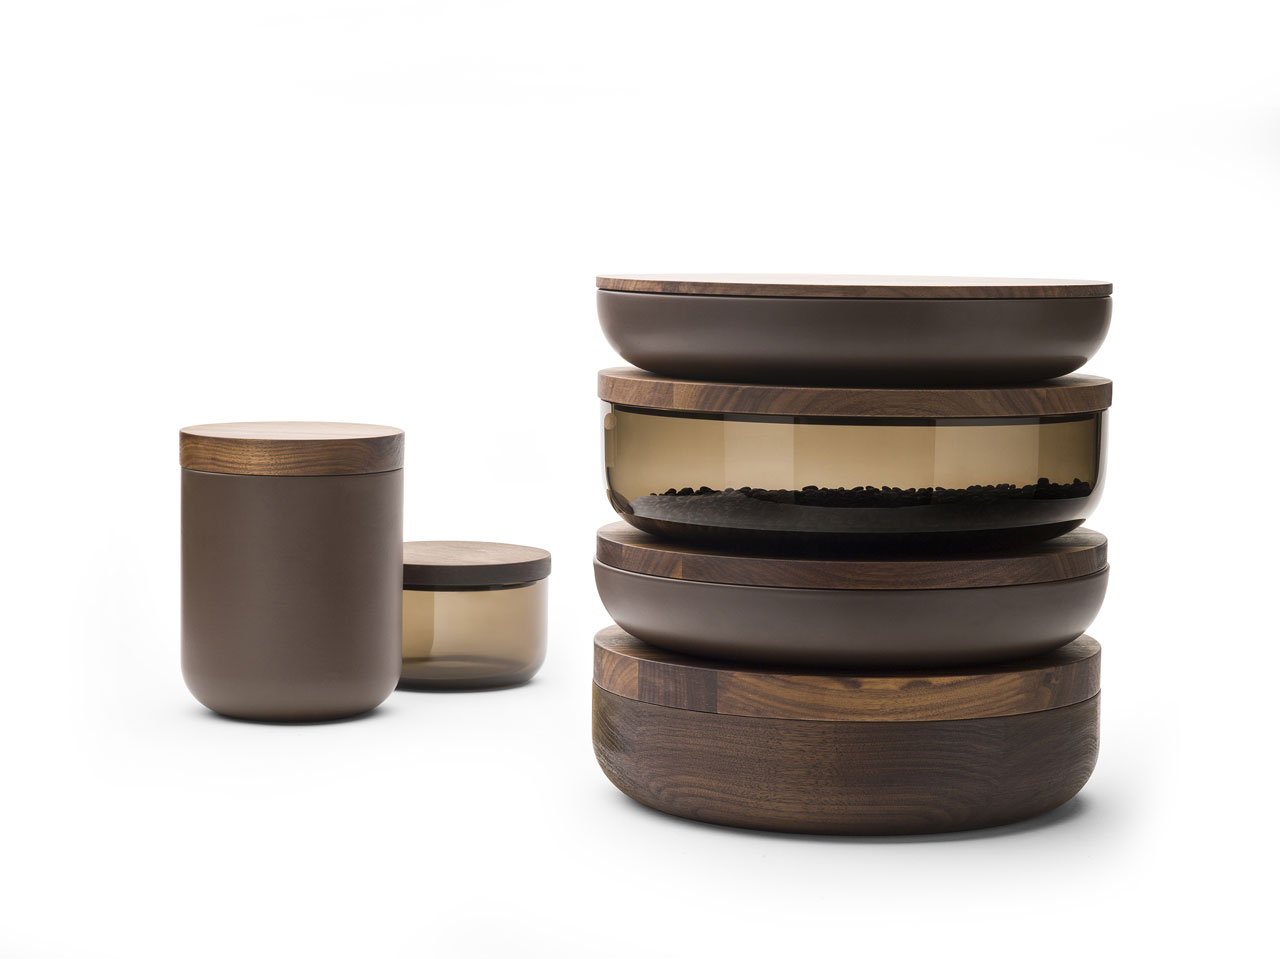 Pottery by Vincent van Duysen for When Objects Work.